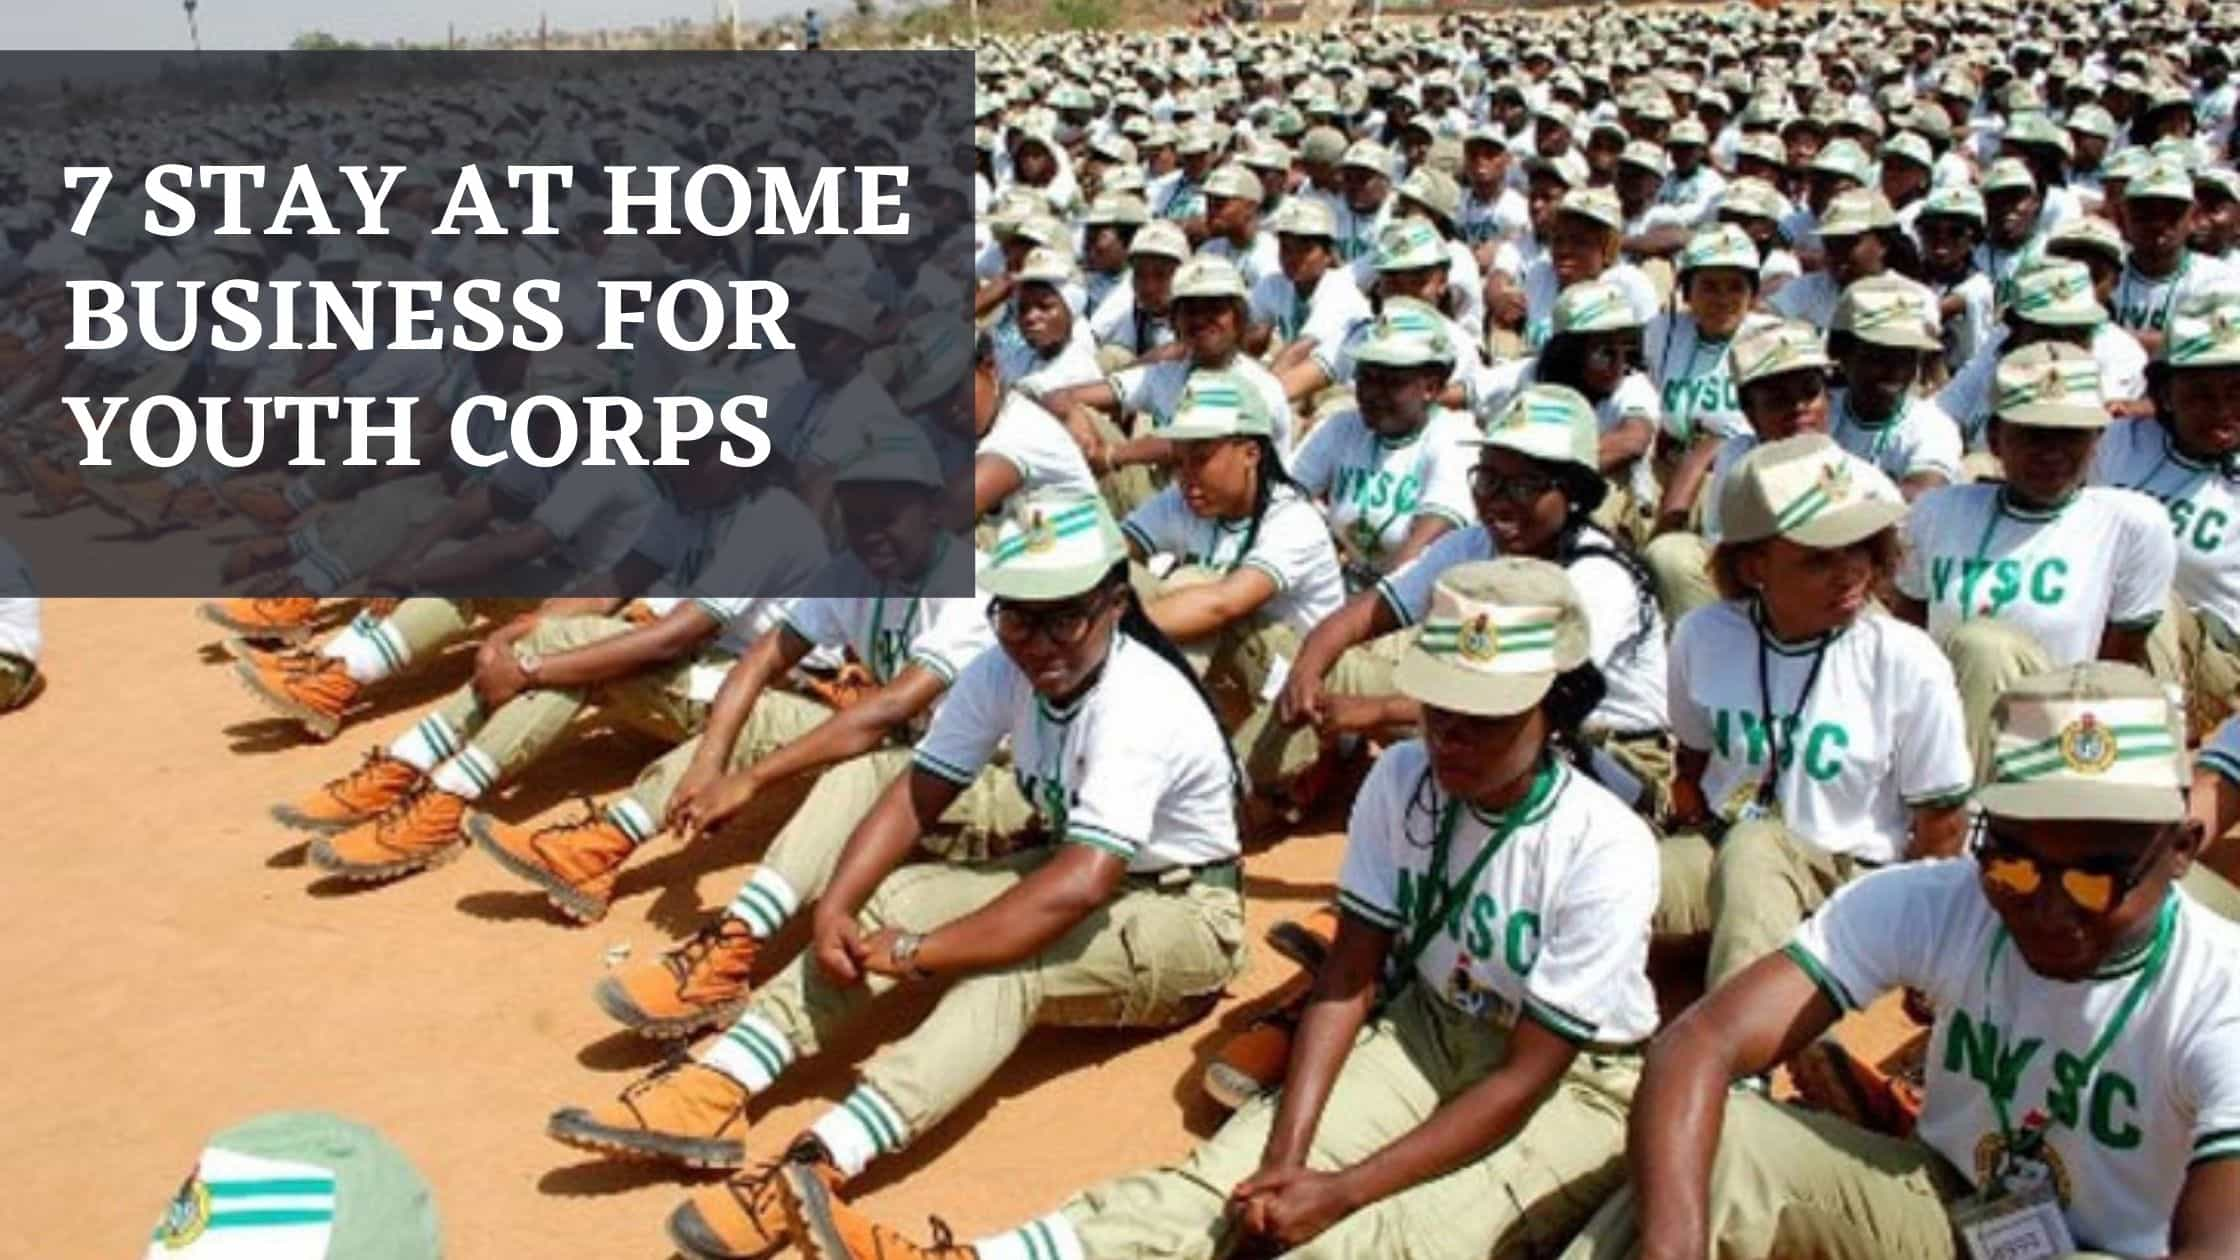 7 Stay at Home Business for Youth Corps